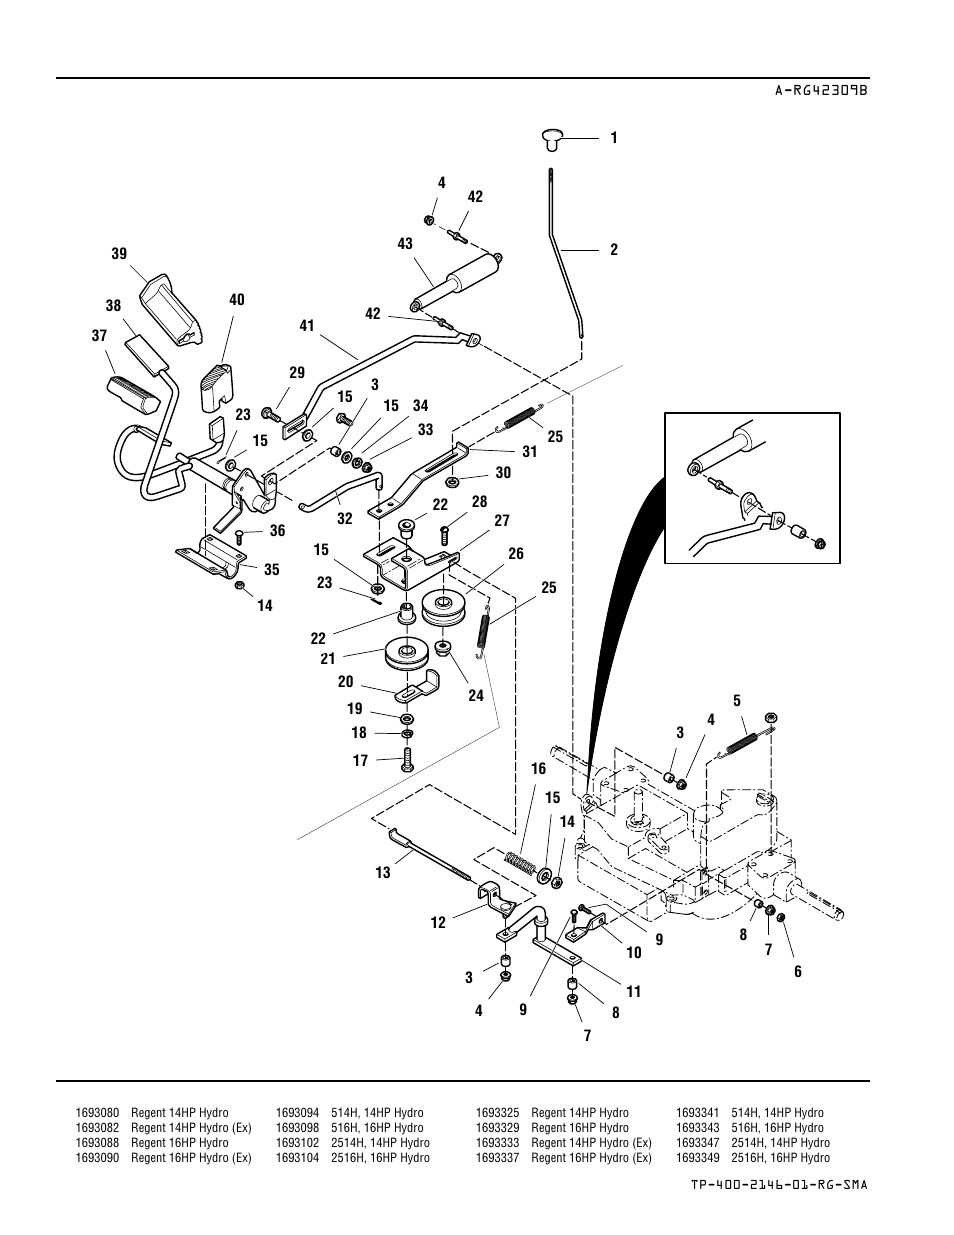 Control linkage group — hydro models | Simplicity REGENT 500